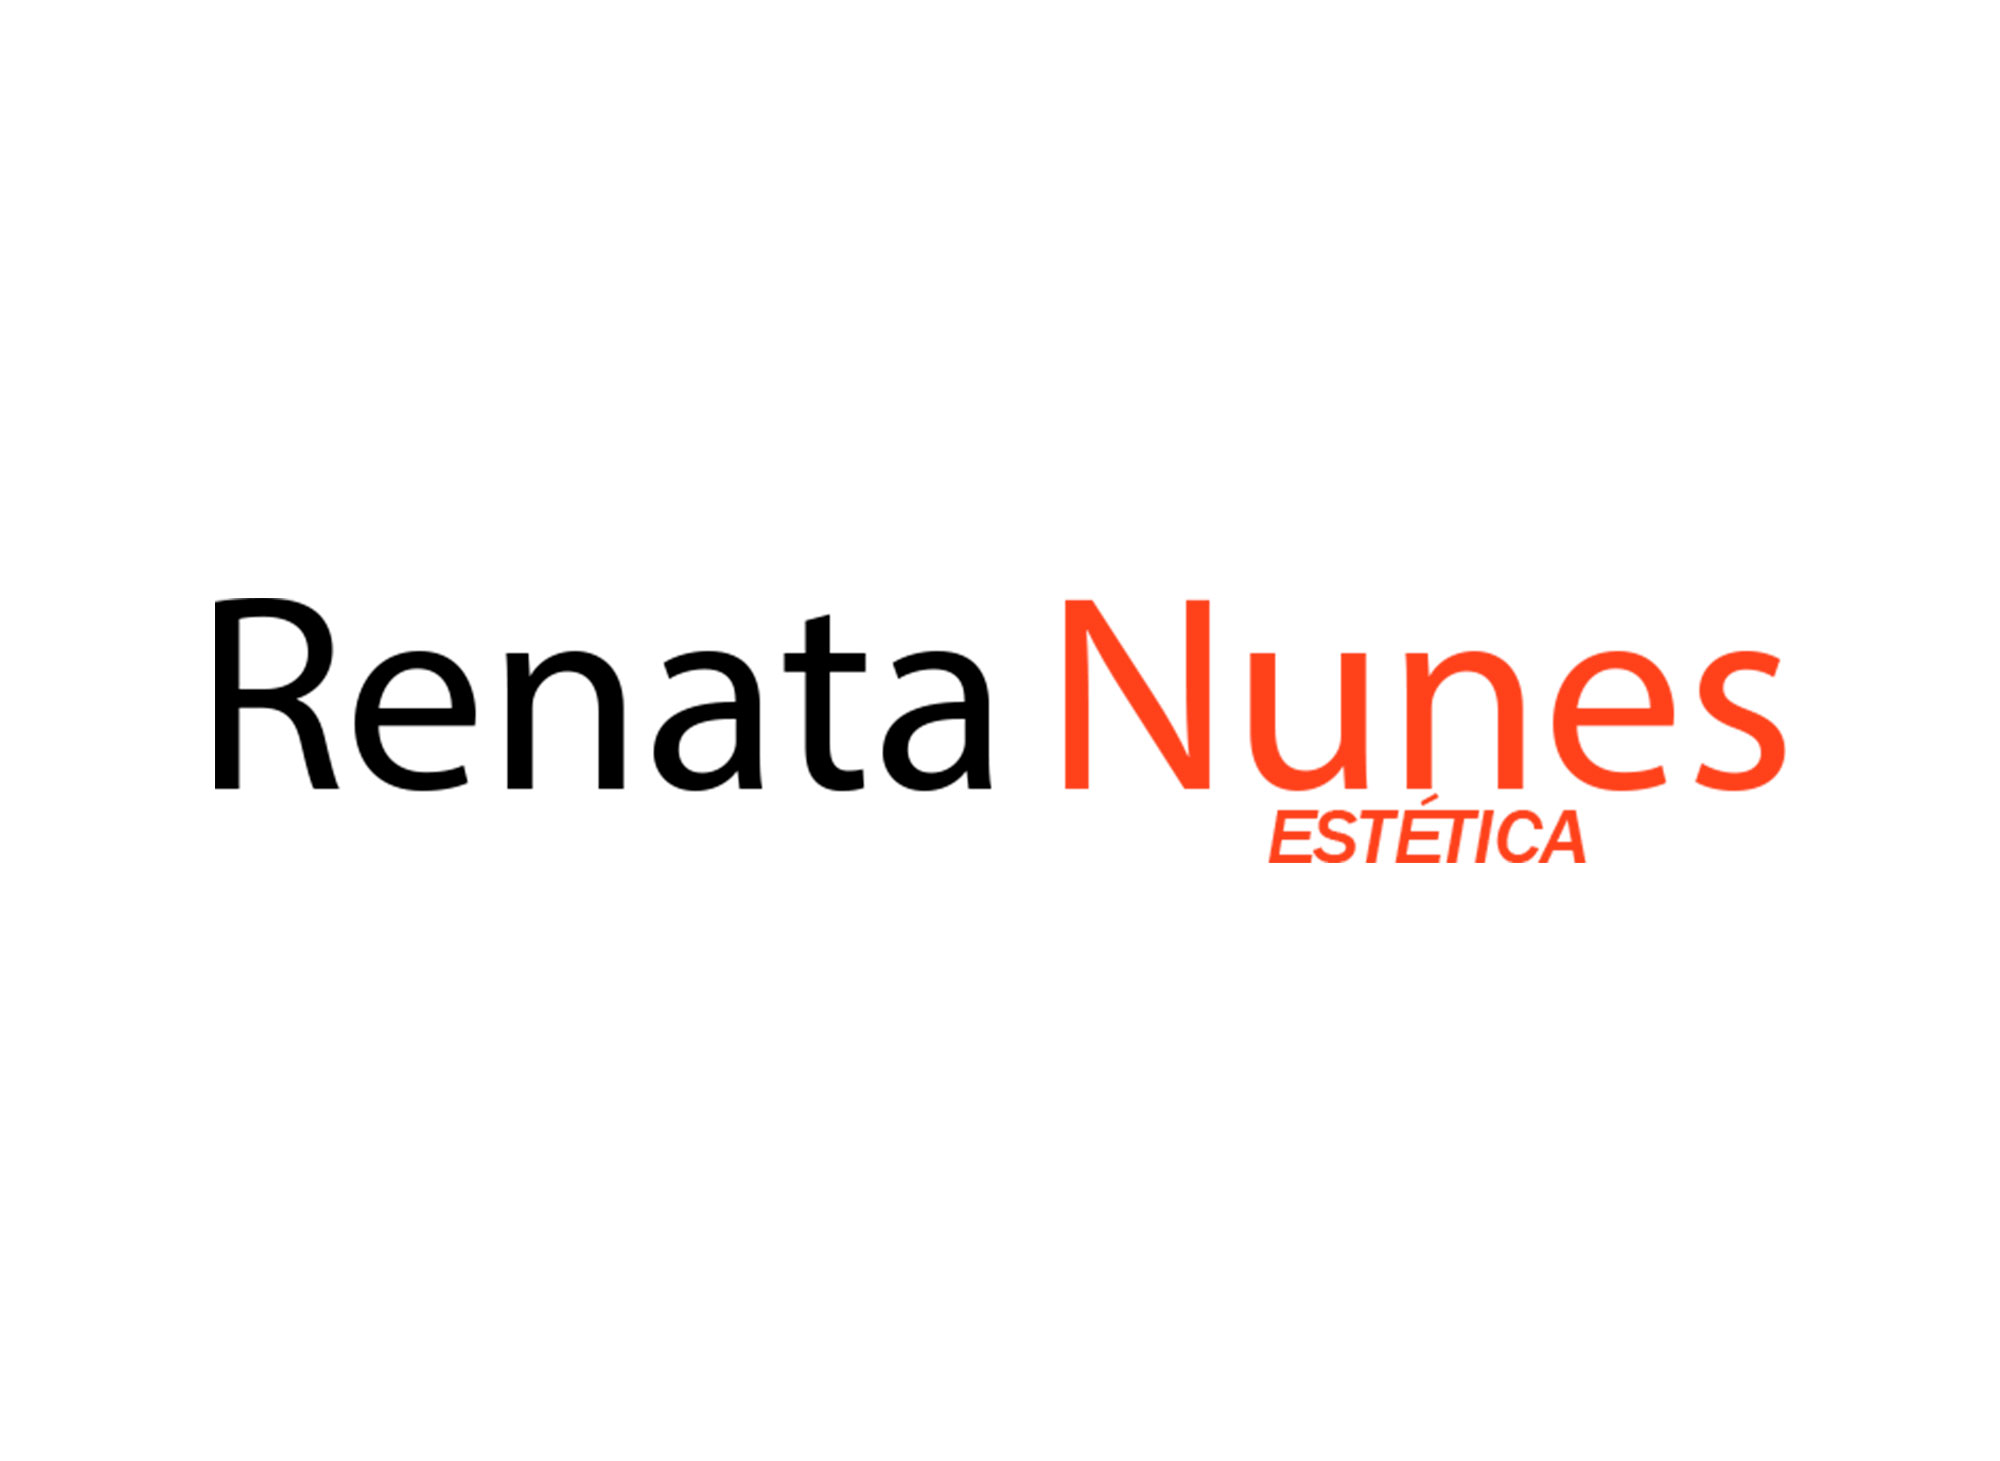 renata-nunes-estetica-cliente-agencia-diretriz-digital-marketing-fortaleza